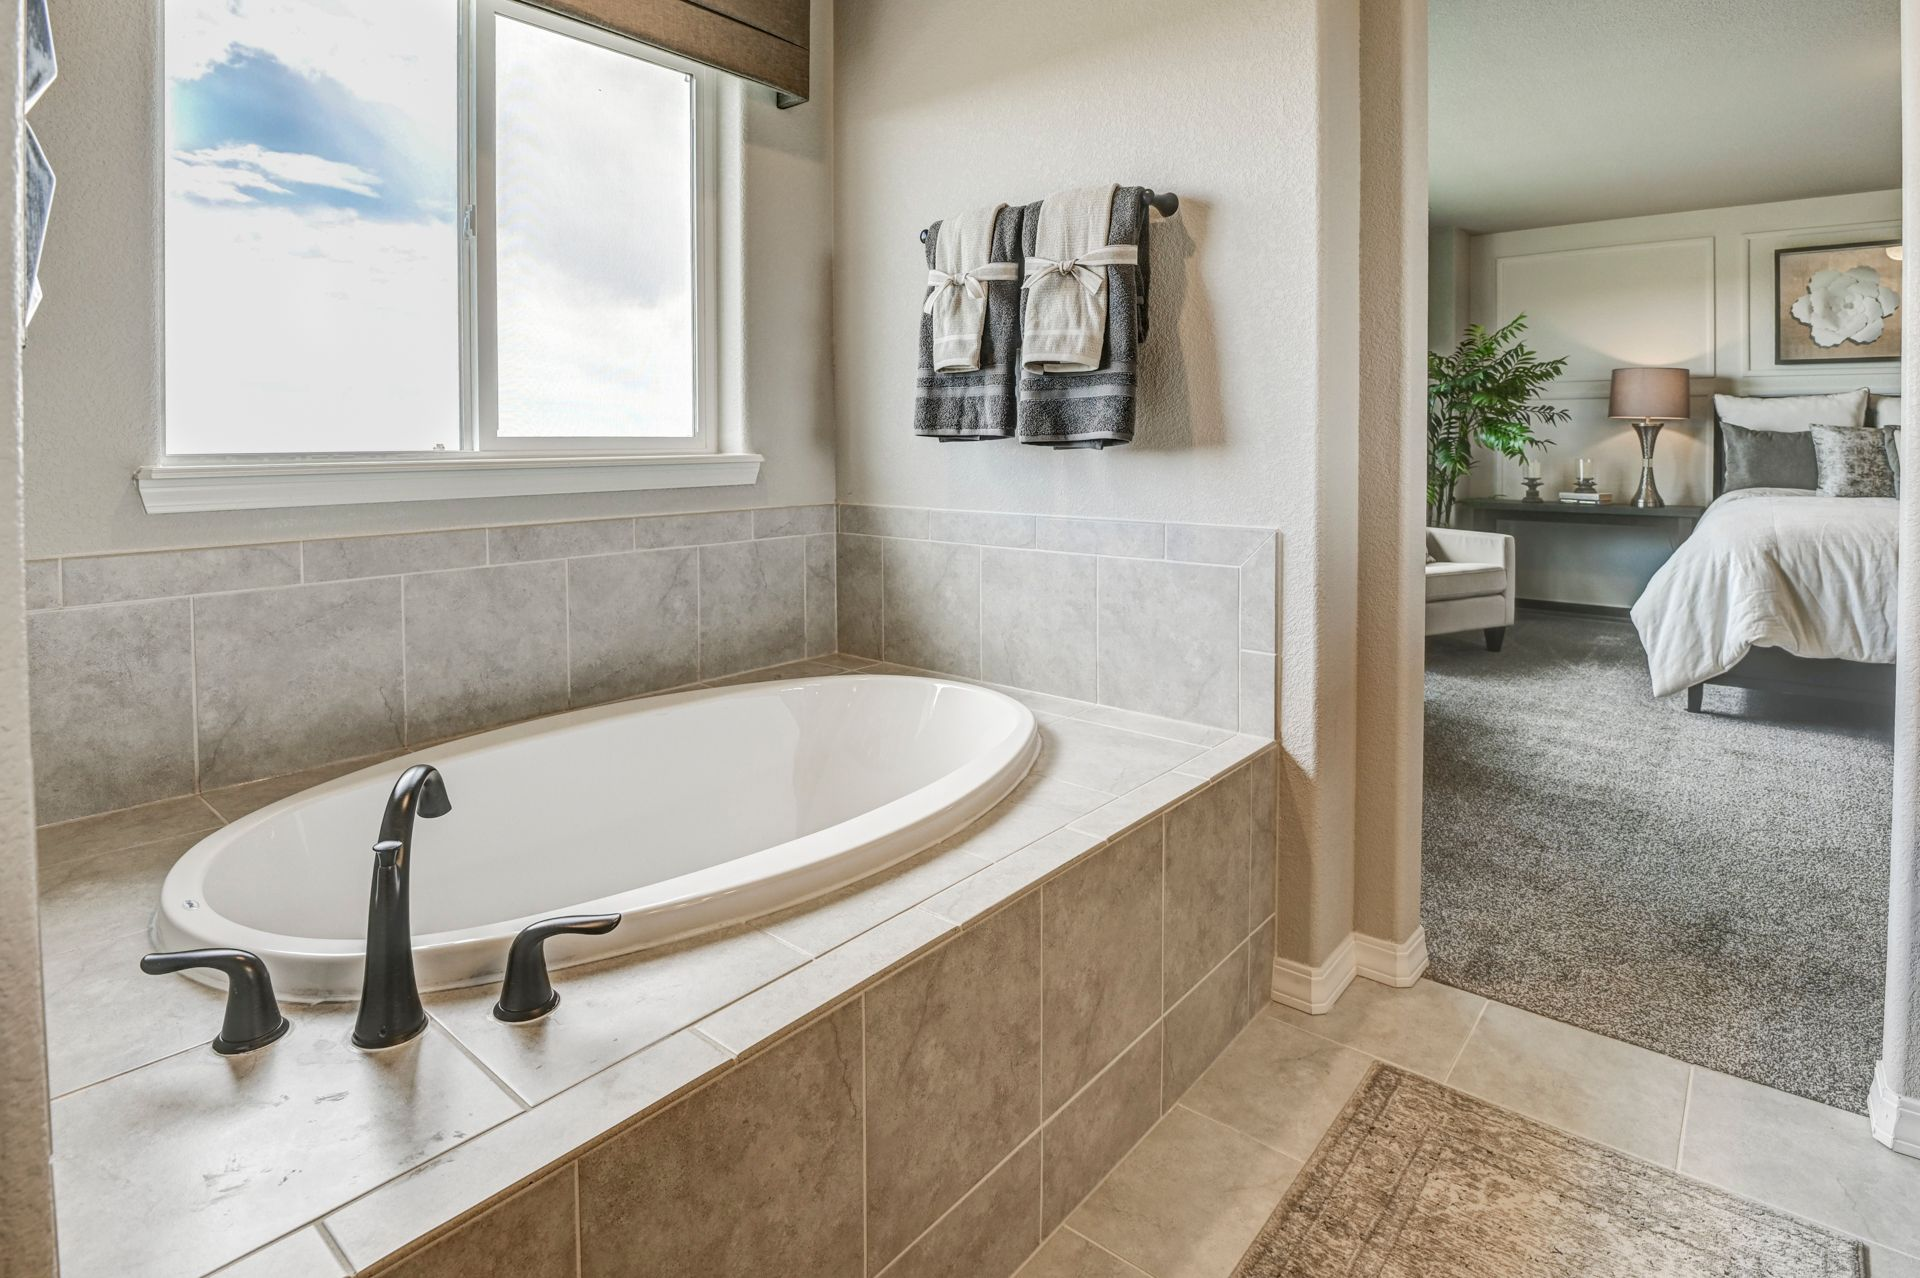 Bathroom featured in The Charleston By Challenger Homes in Colorado Springs, CO